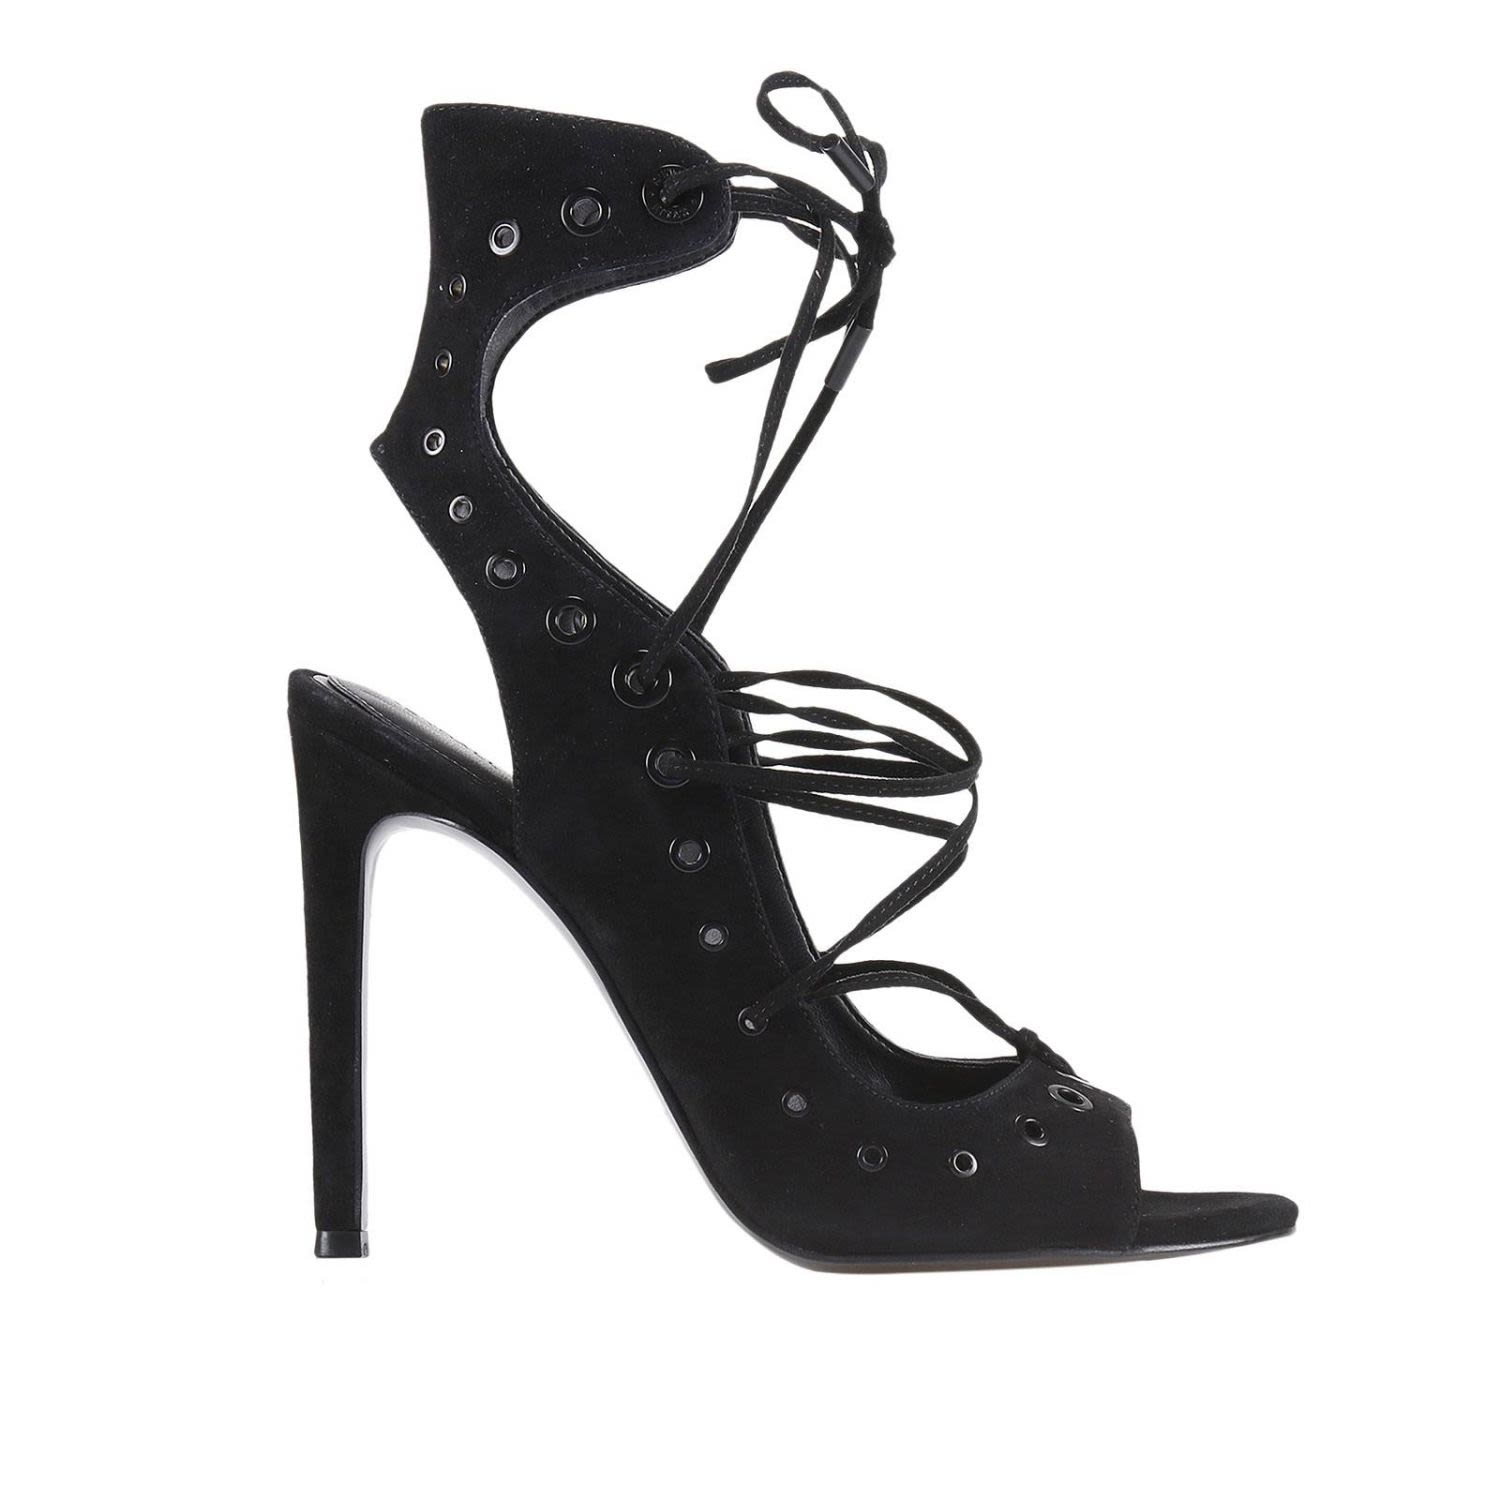 Kendall + Kylie Heeled Sandals Shoes Women Kendall + Kylie